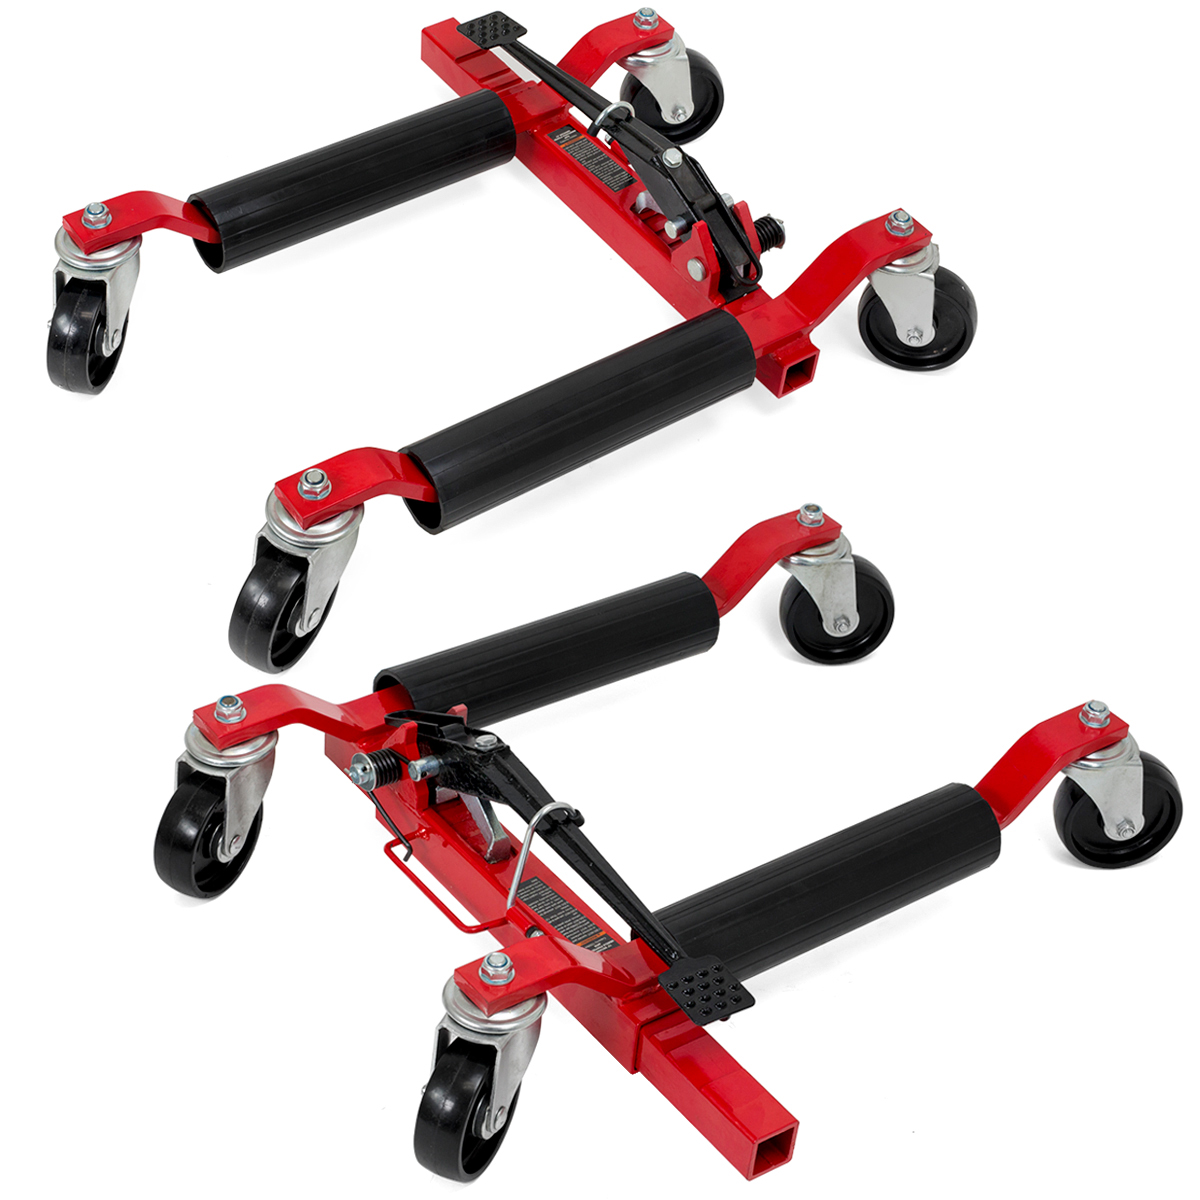 Car Wheel Dolly >> Xtremepowerus Set Of 2 Wheel Dolly Car Skates Vehicle Positioning